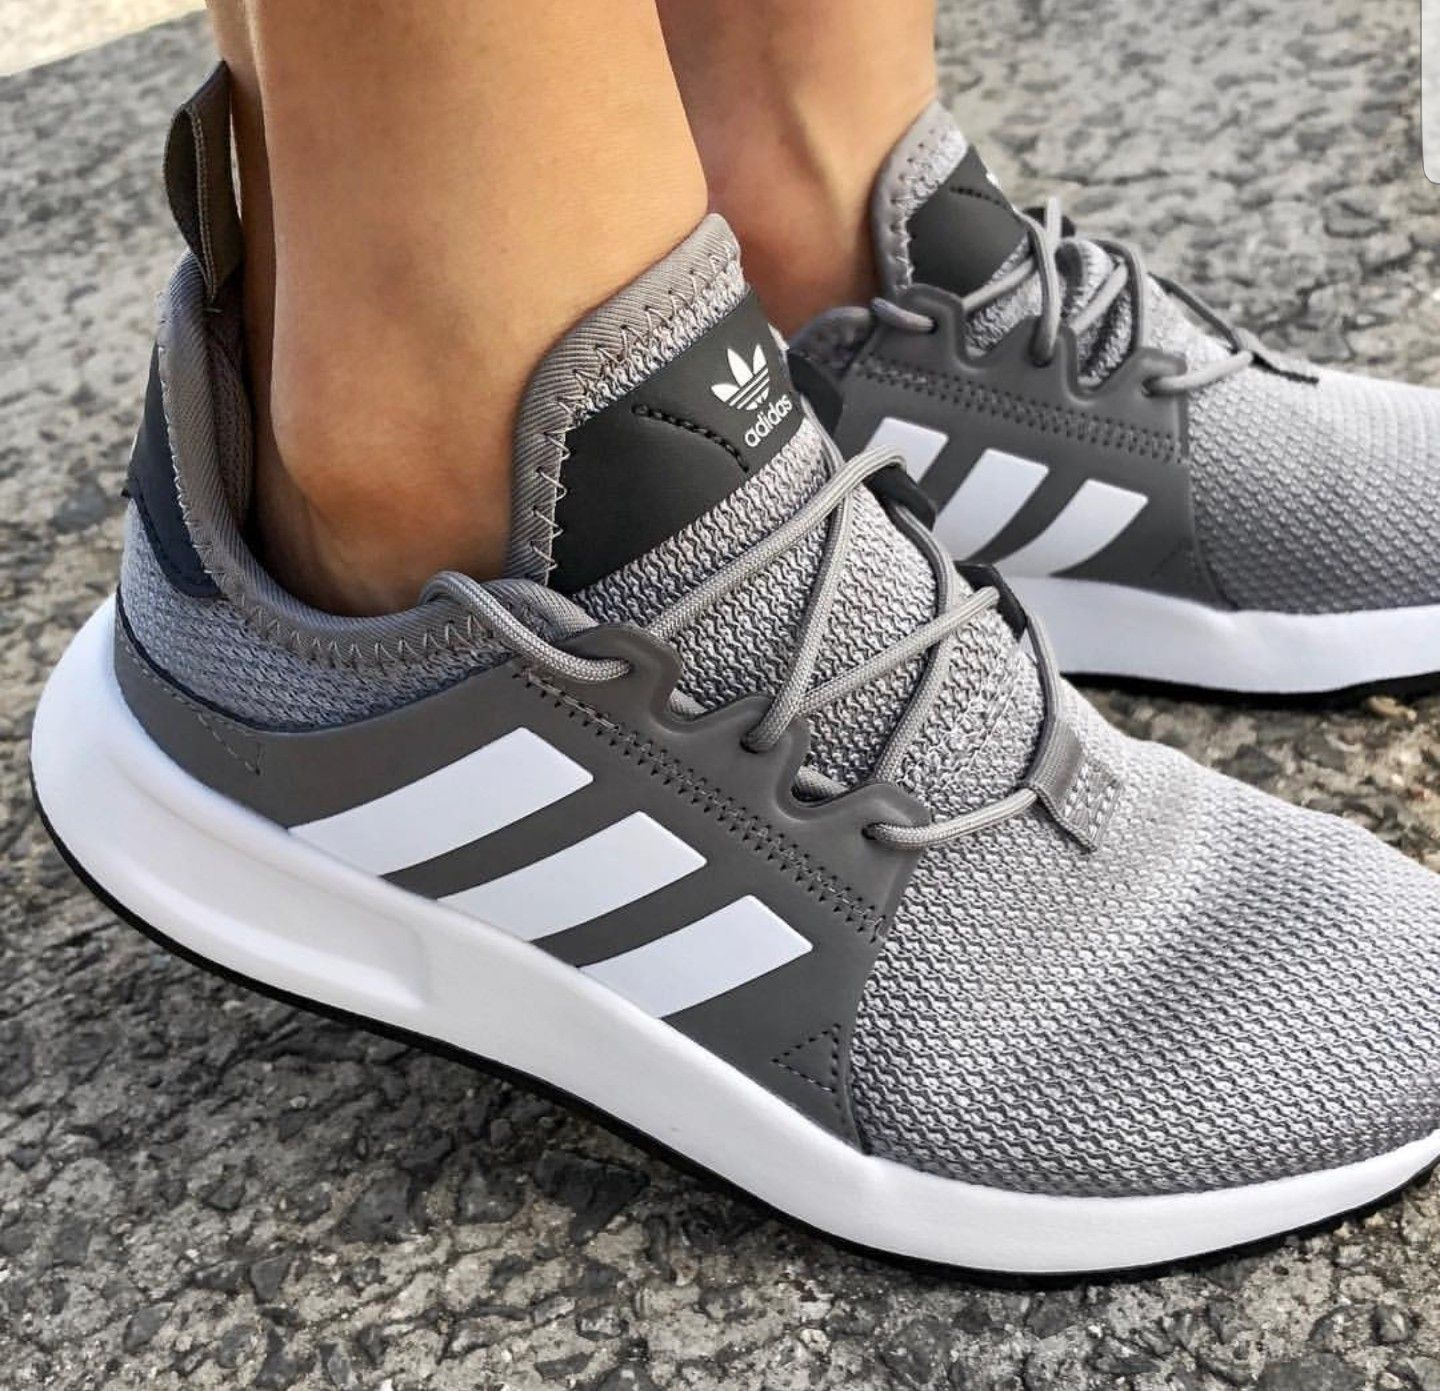 sneakerlove #adidas #sneakers #trainers #fitness #gym ...